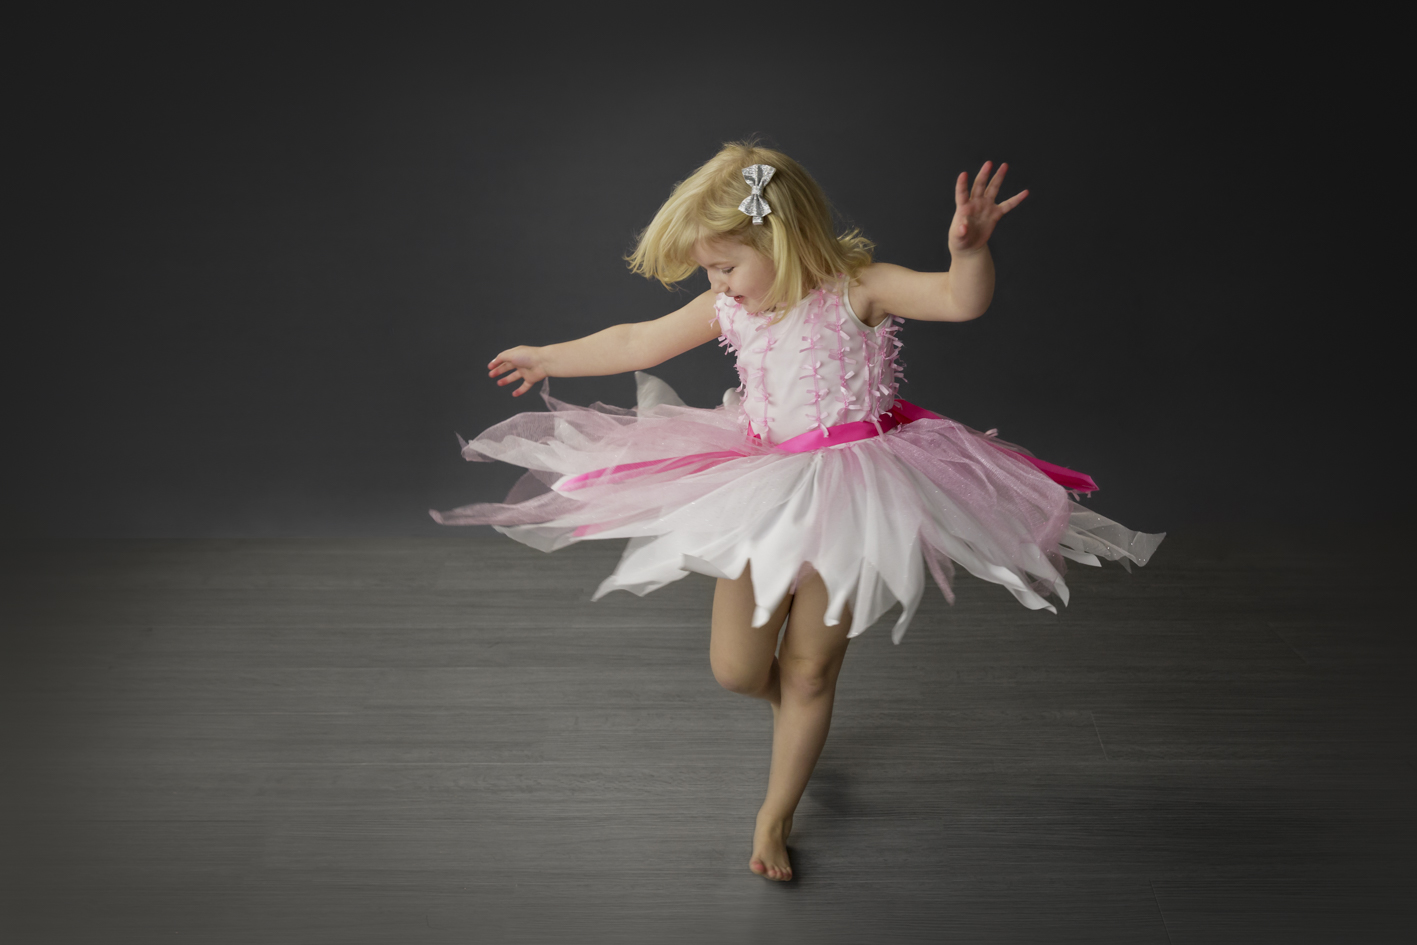 girl twirling in dress